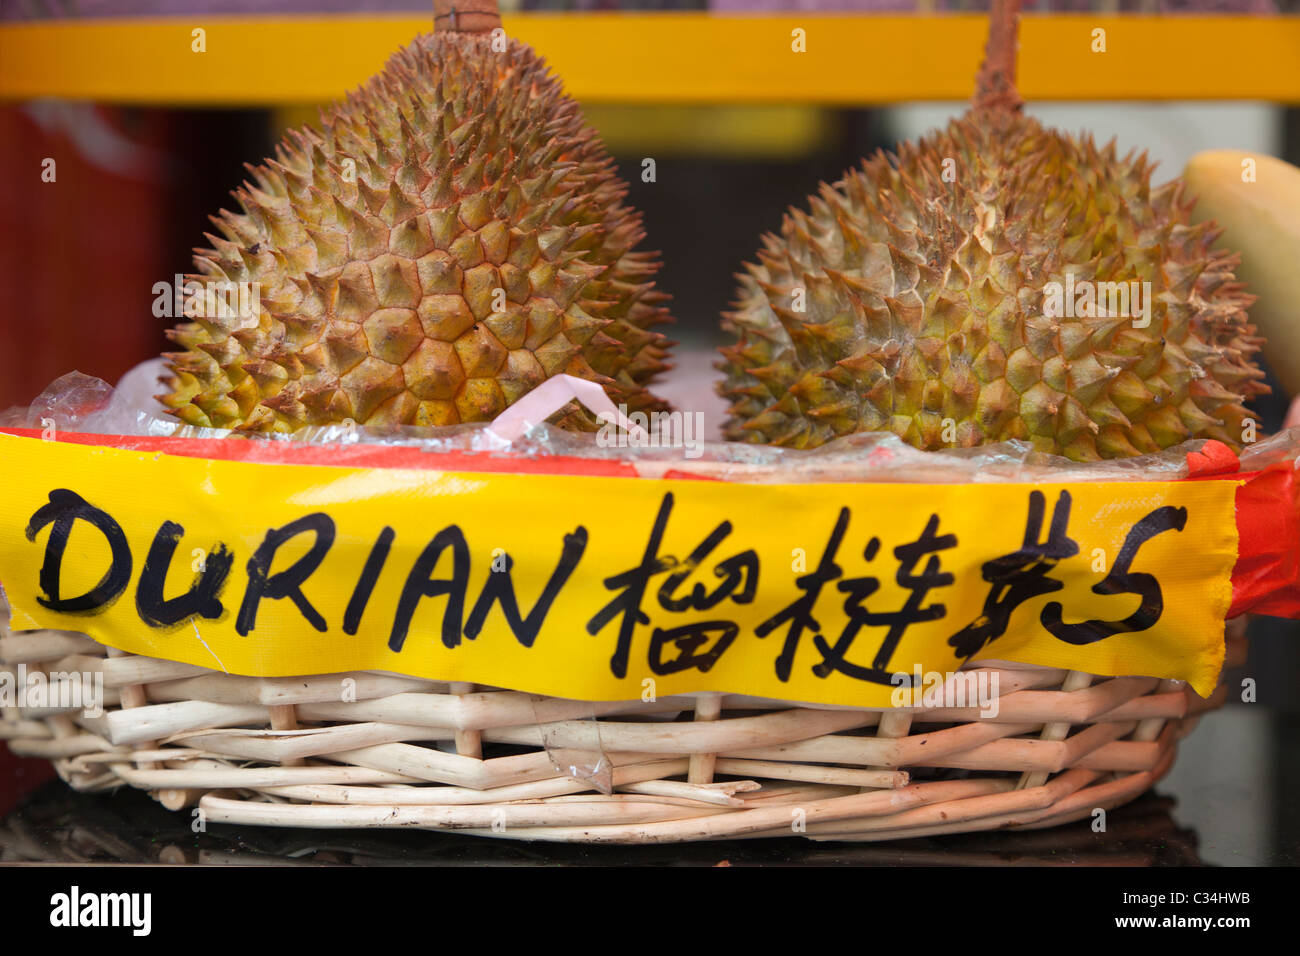 The infamous, smelliferous Durian fruit on sale in Singapore - Stock Image